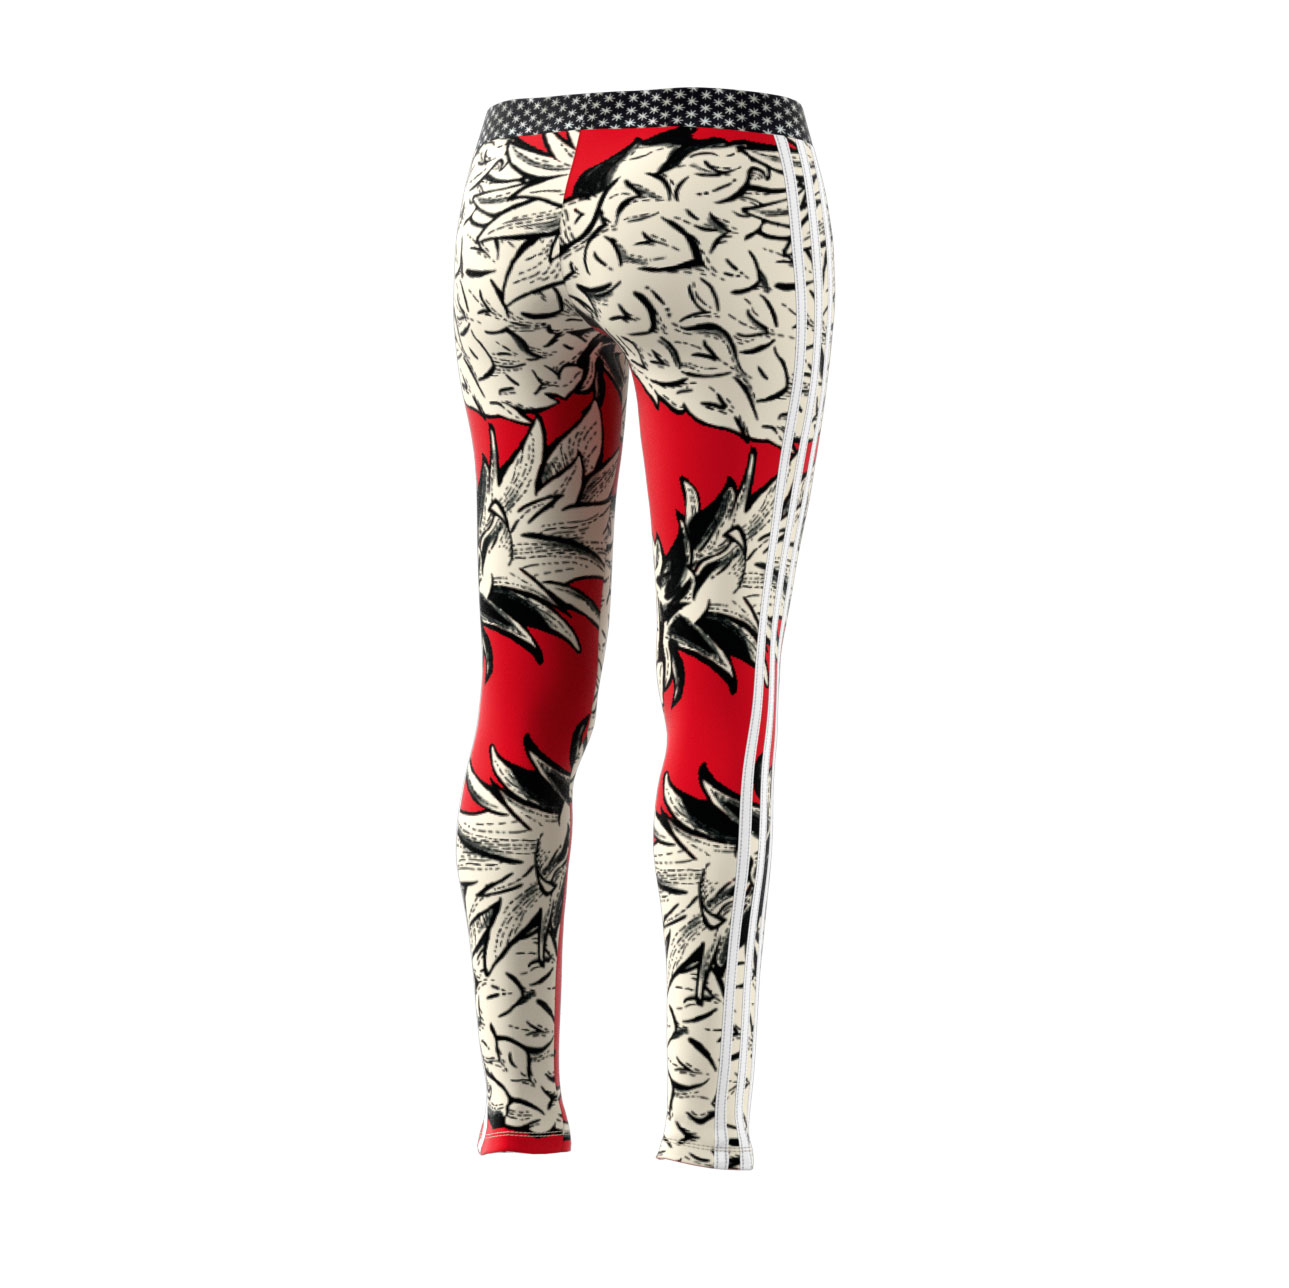 Details about Adidas Originals 3-Stripes Women s Athletic Fashion Tights  Multicolor dh3065 fdd7be6167